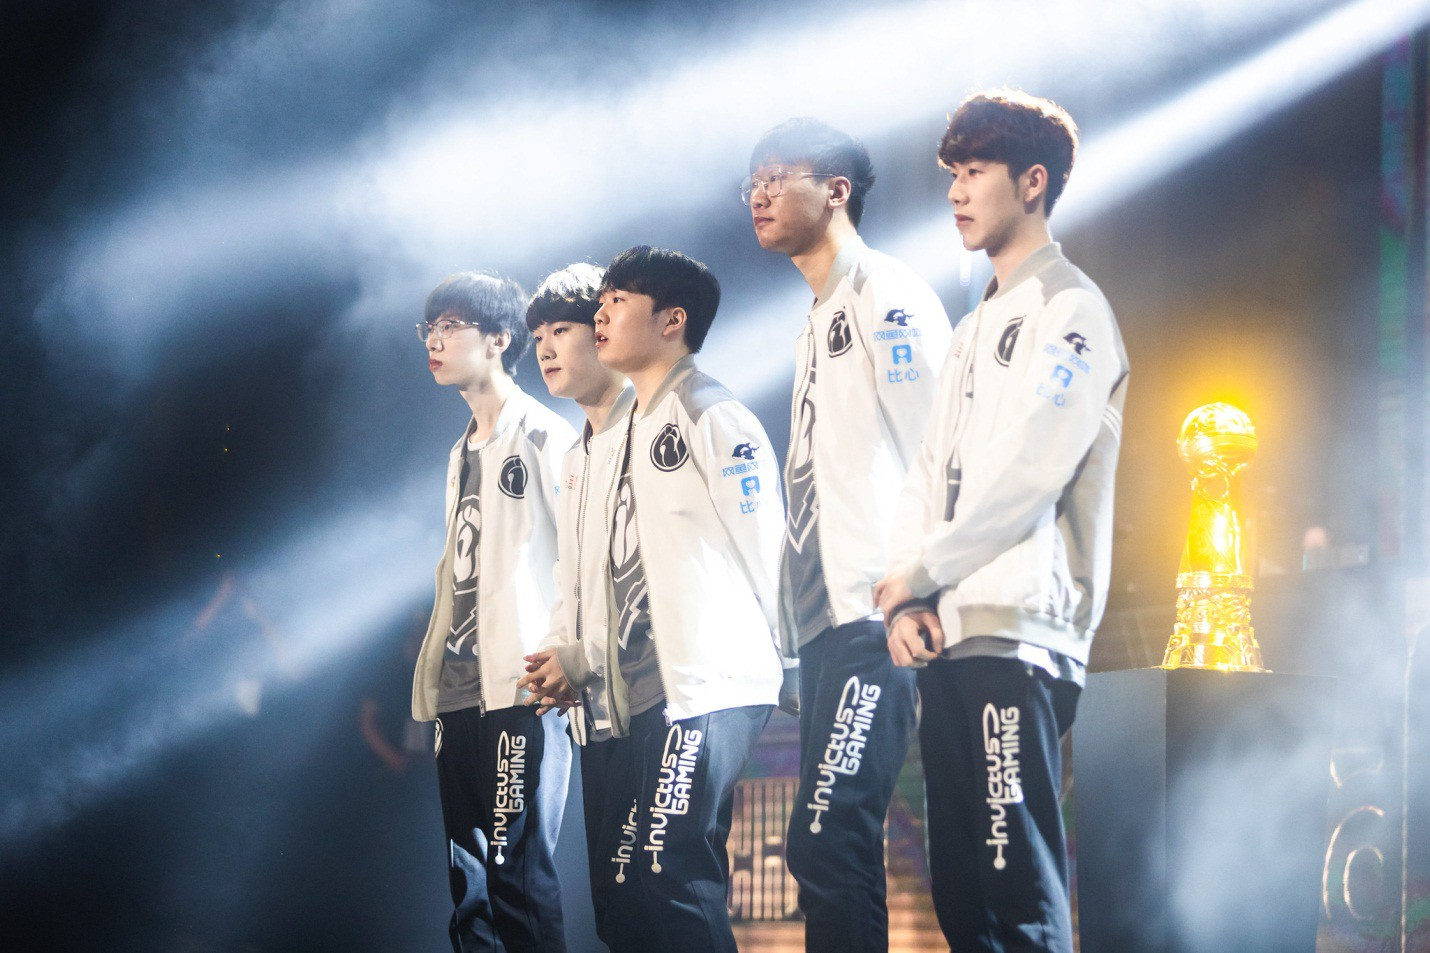 Invictus Gaming - Royal Never Give Up